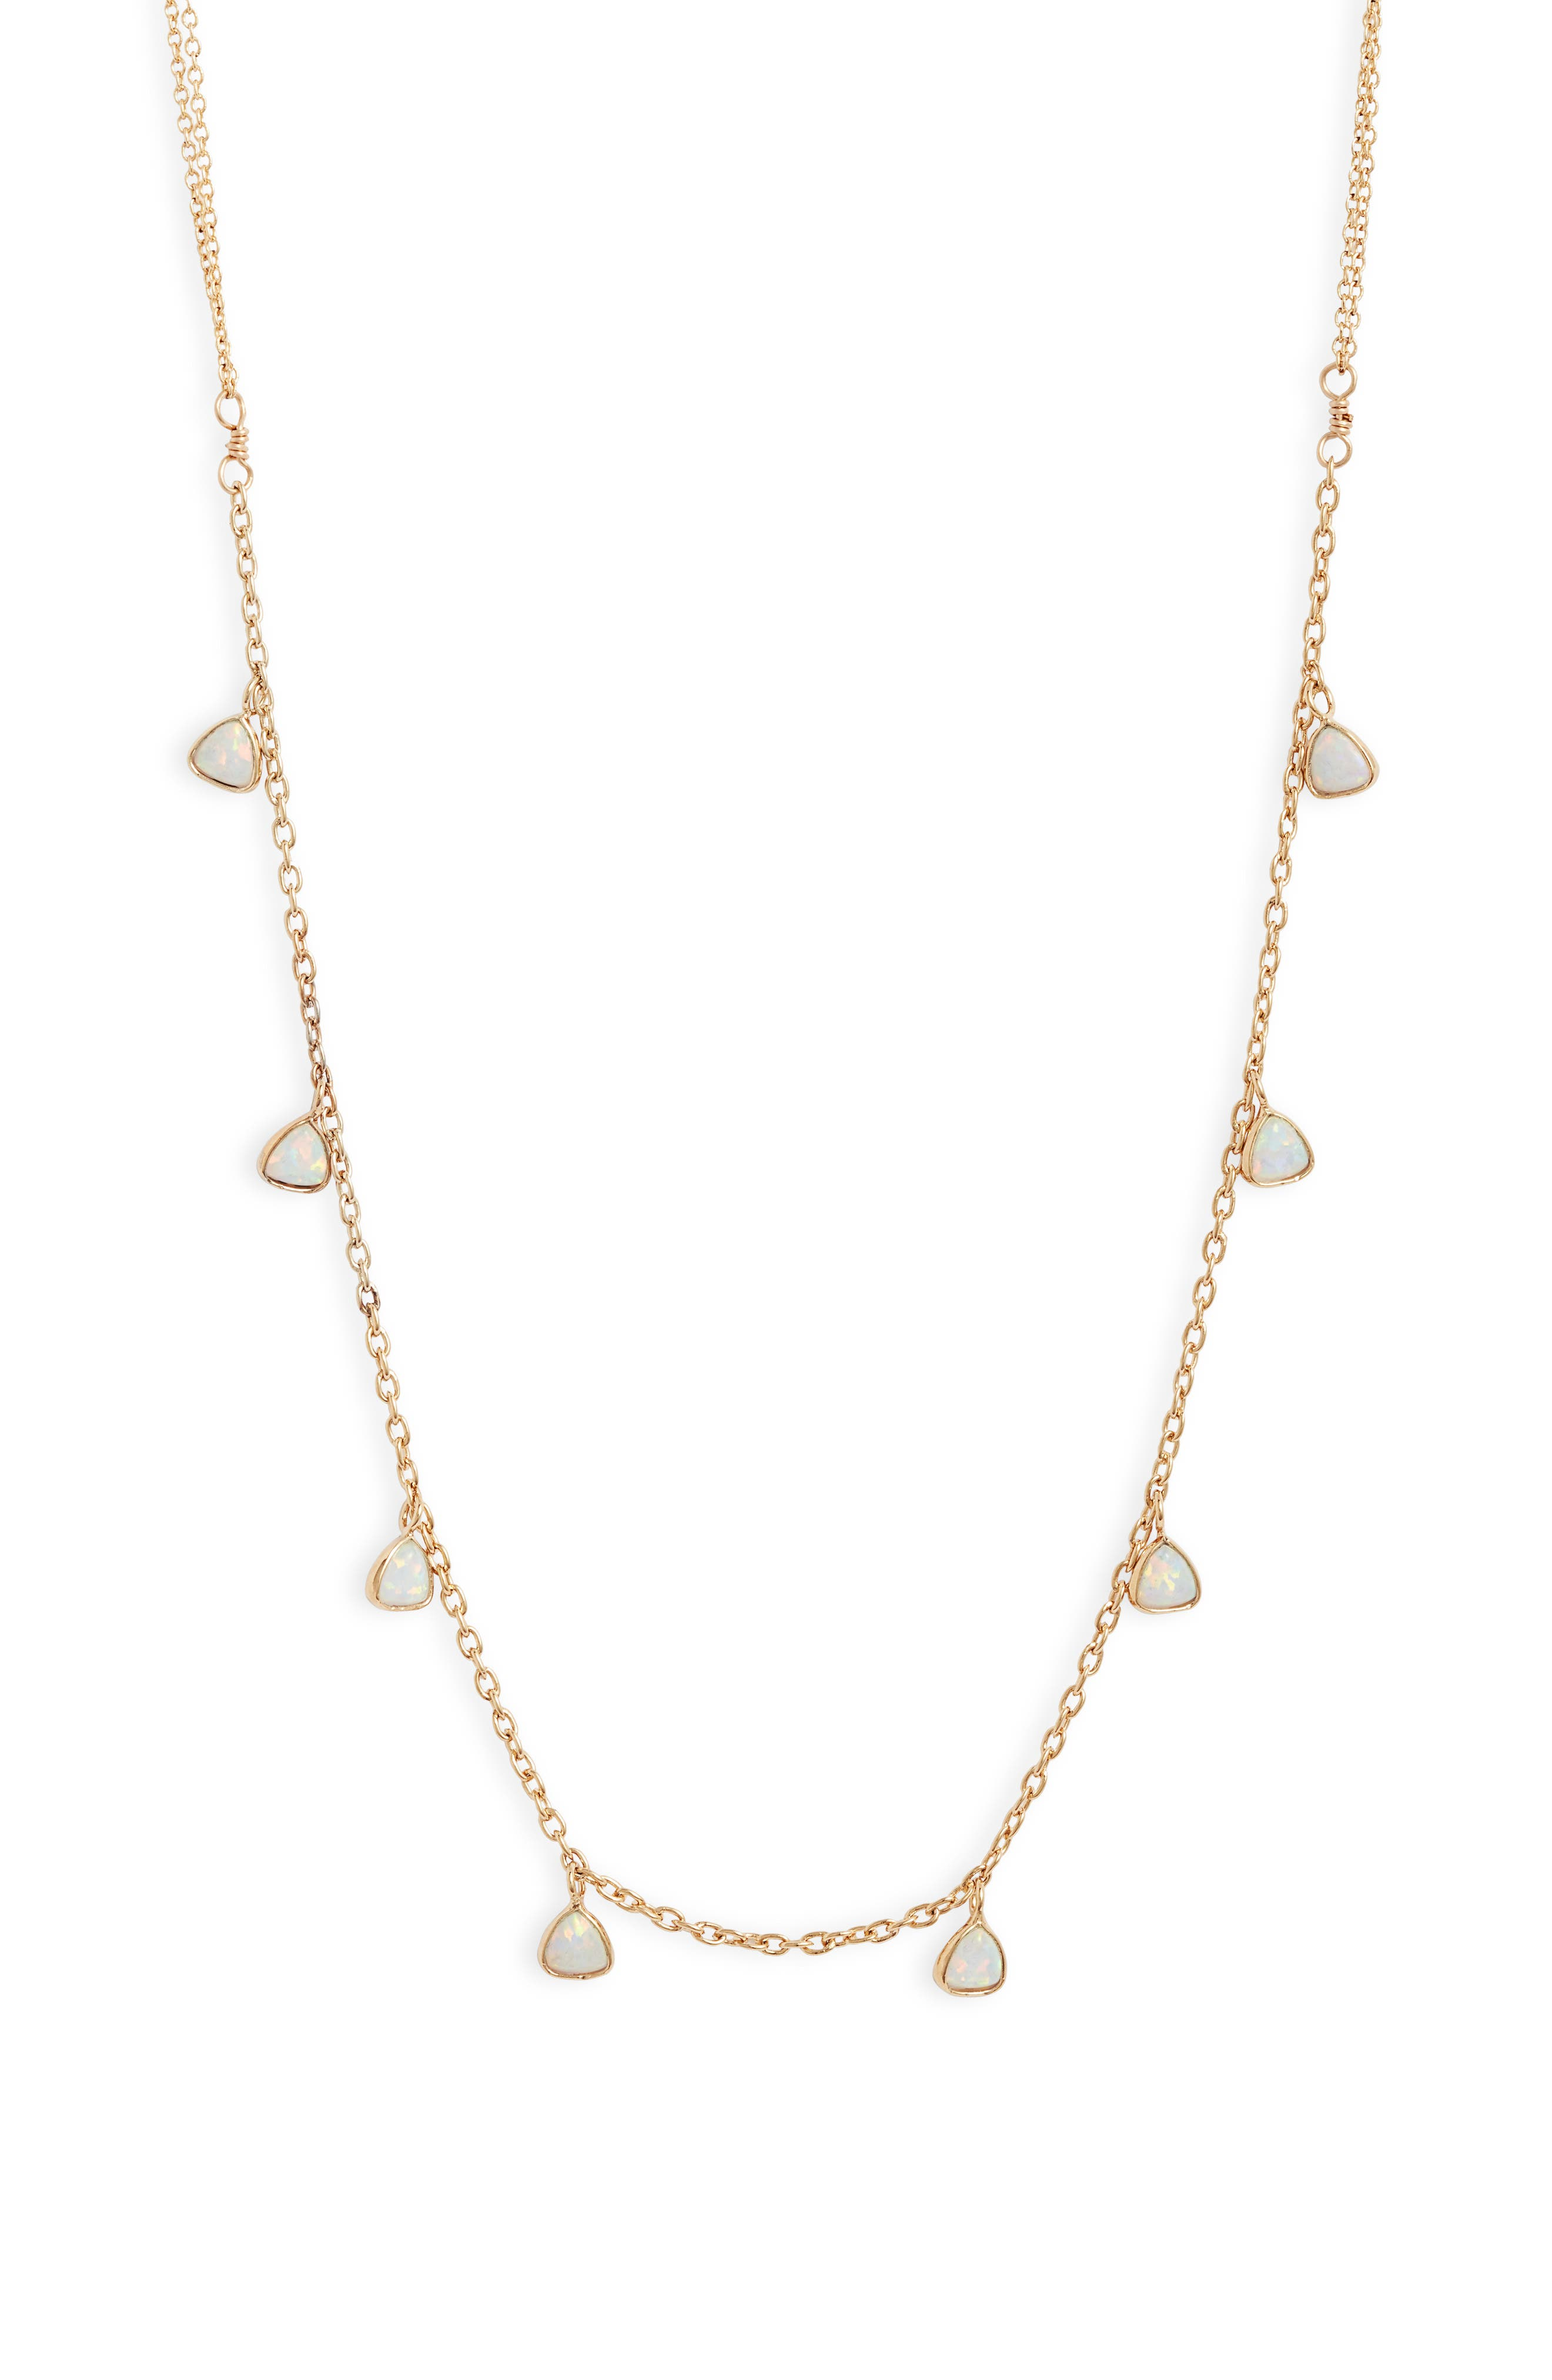 Designed long with a doubled chain, this layer-friendly necklace strikes a boho note with lab-created opal stations dancing with iridescent shimmer. Style Name: Set & Stones Greycie Shaker Station Necklace. Style Number: 5966498. Available in stores.